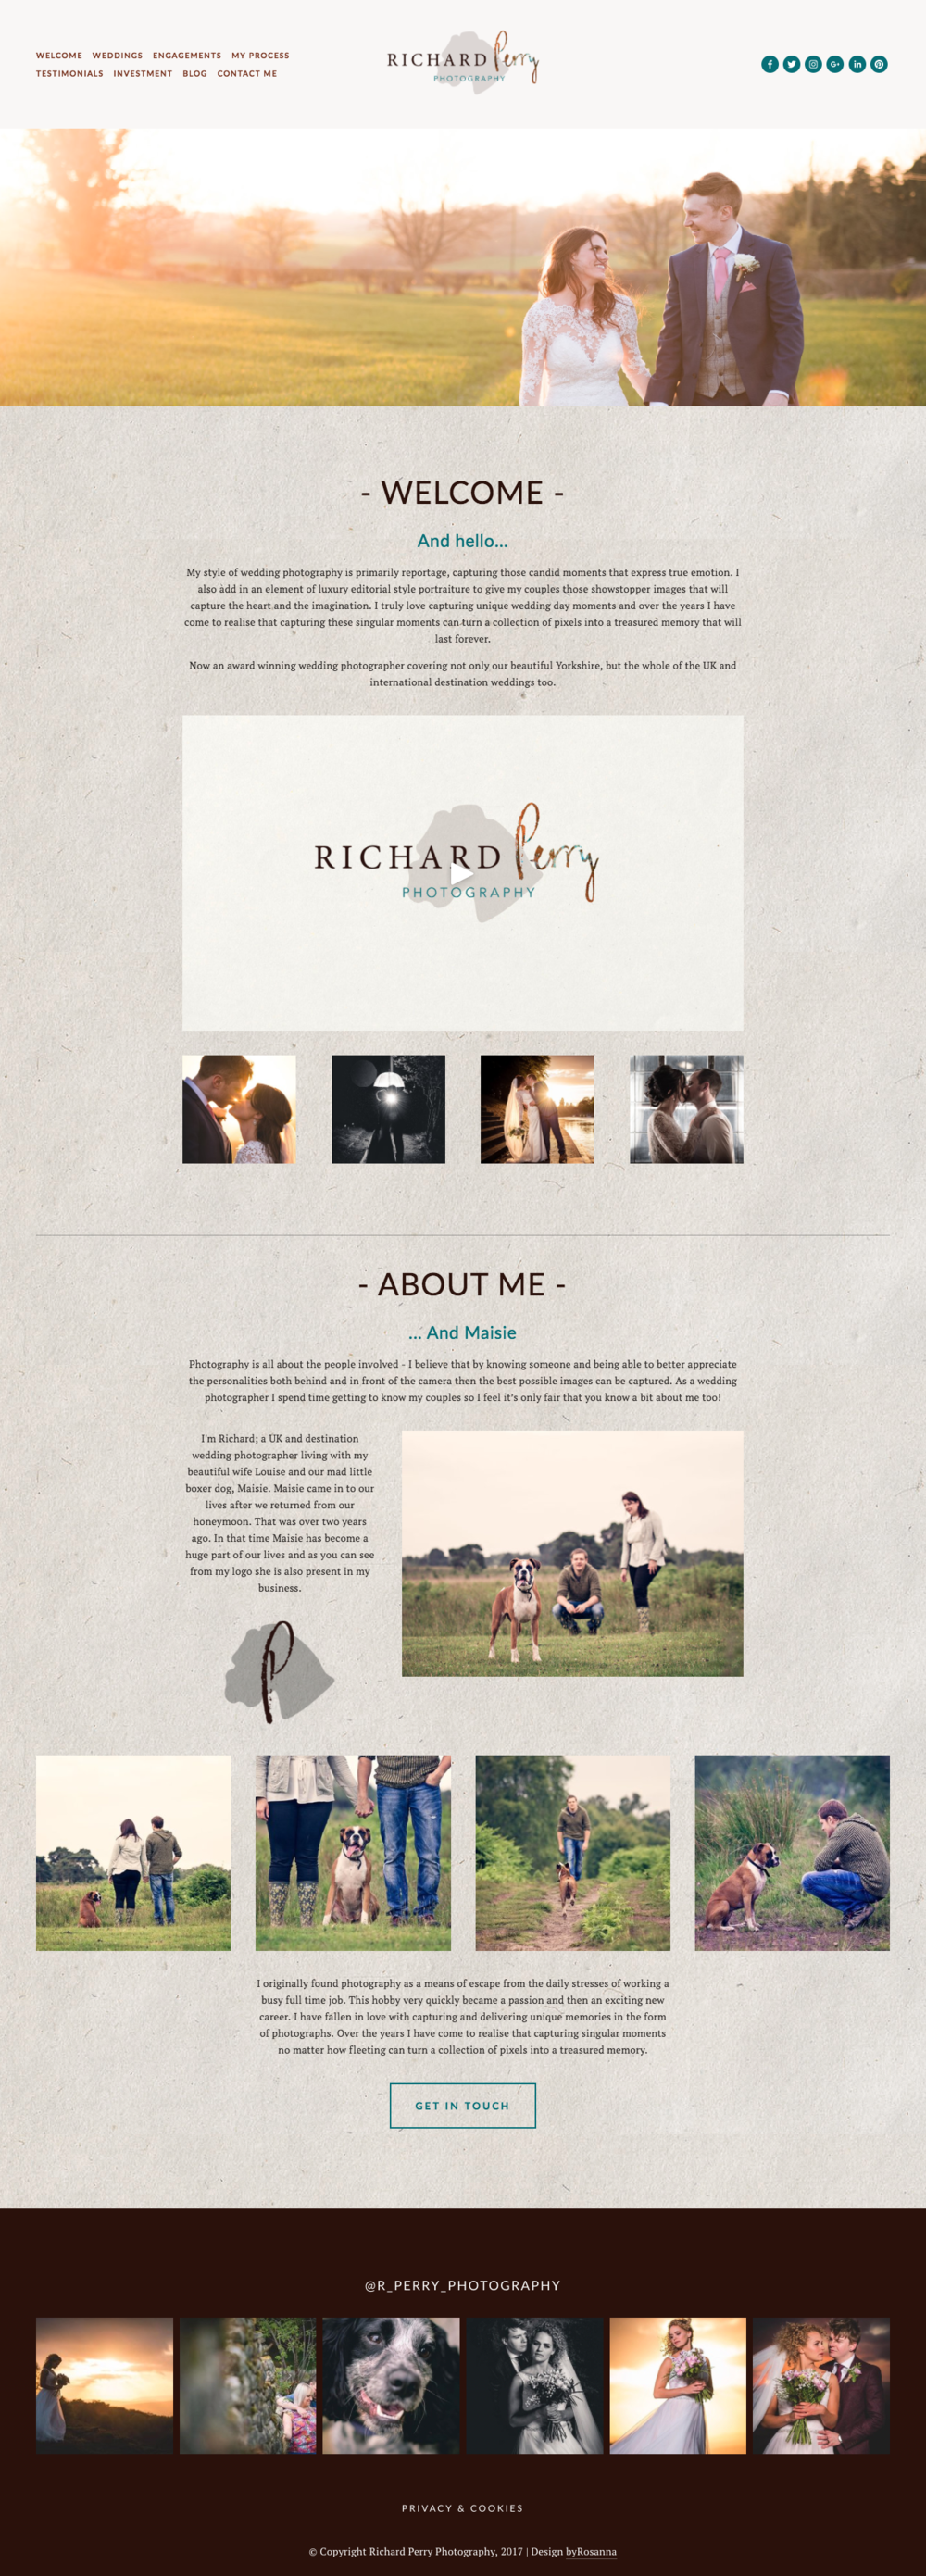 FireShot Capture 26 - Richard Perry Photography I Wedding Ph_ - https___richardperryphotography.com_.png